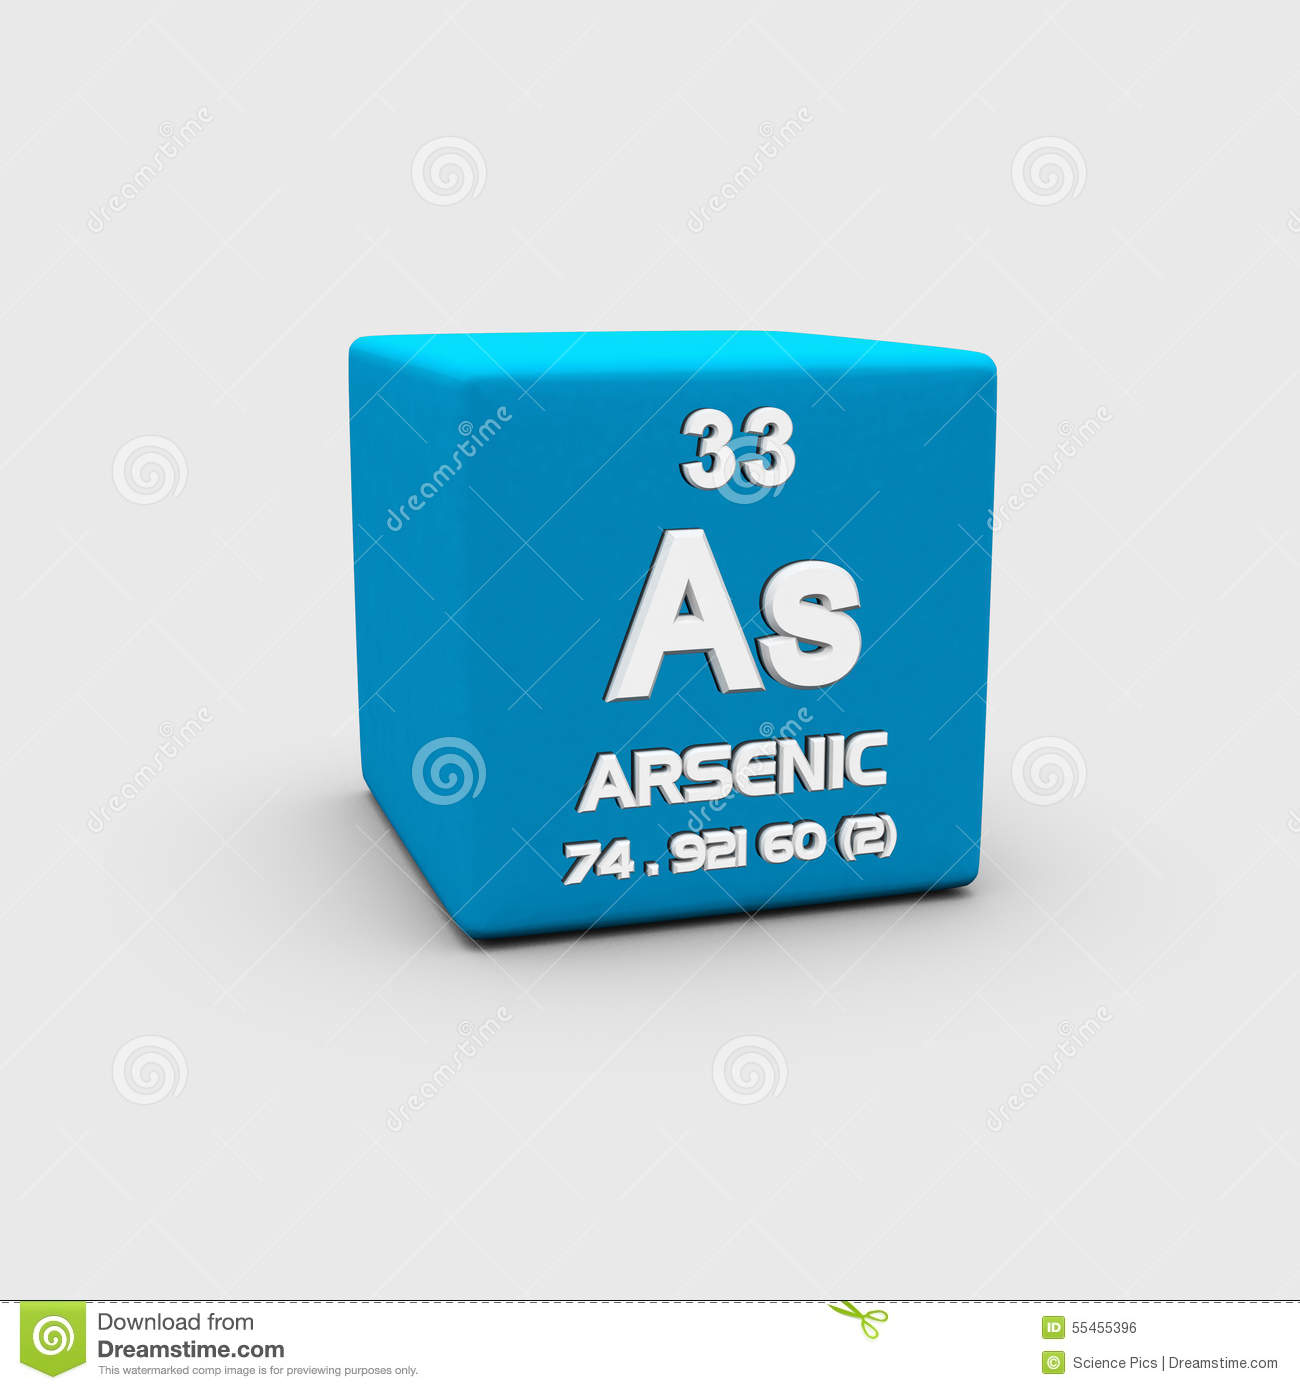 Atomic number arsenic stock illustration illustration of physics atomic number arsenic biocorpaavc Image collections